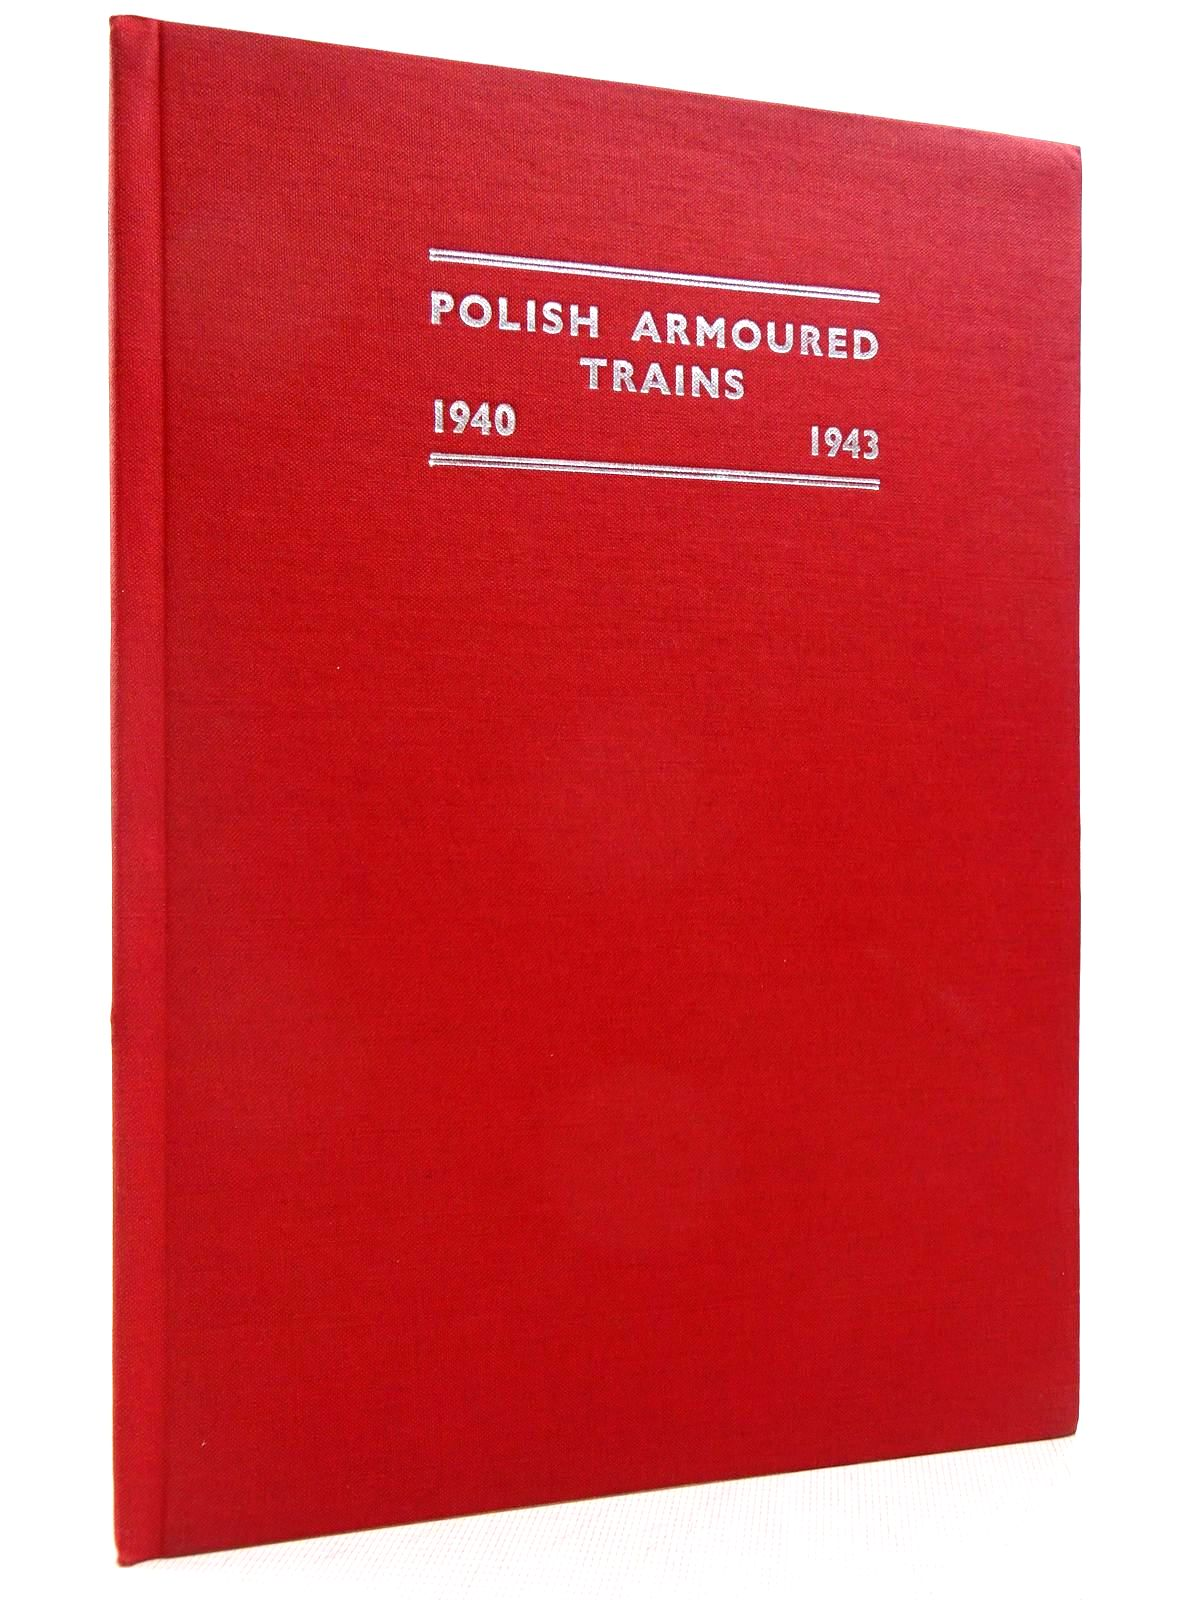 Photo of POLISH ARMOURED TRAINS 1940 1943 written by Boguslawski, Antoni